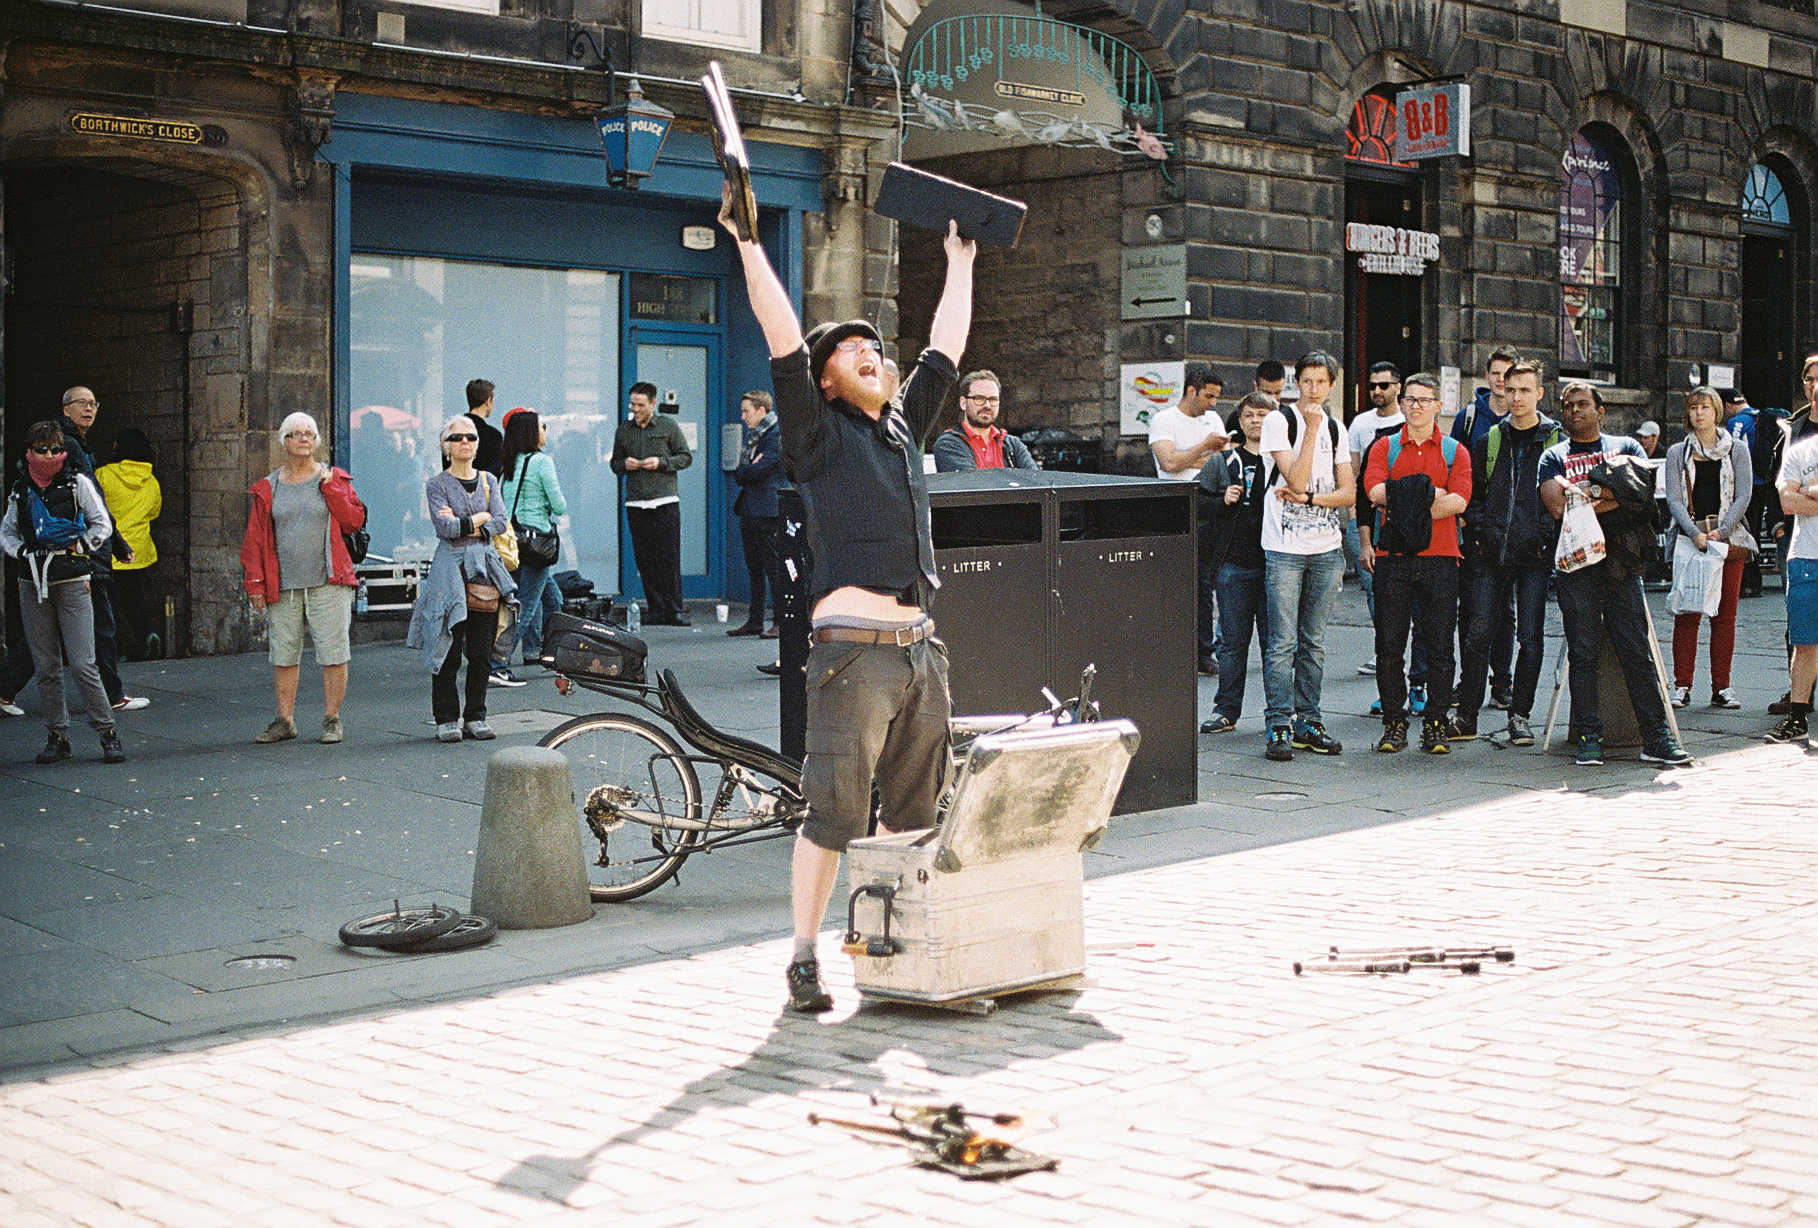 street-performer-juggler-fire-edinburgh-scotland-european-honeymoon